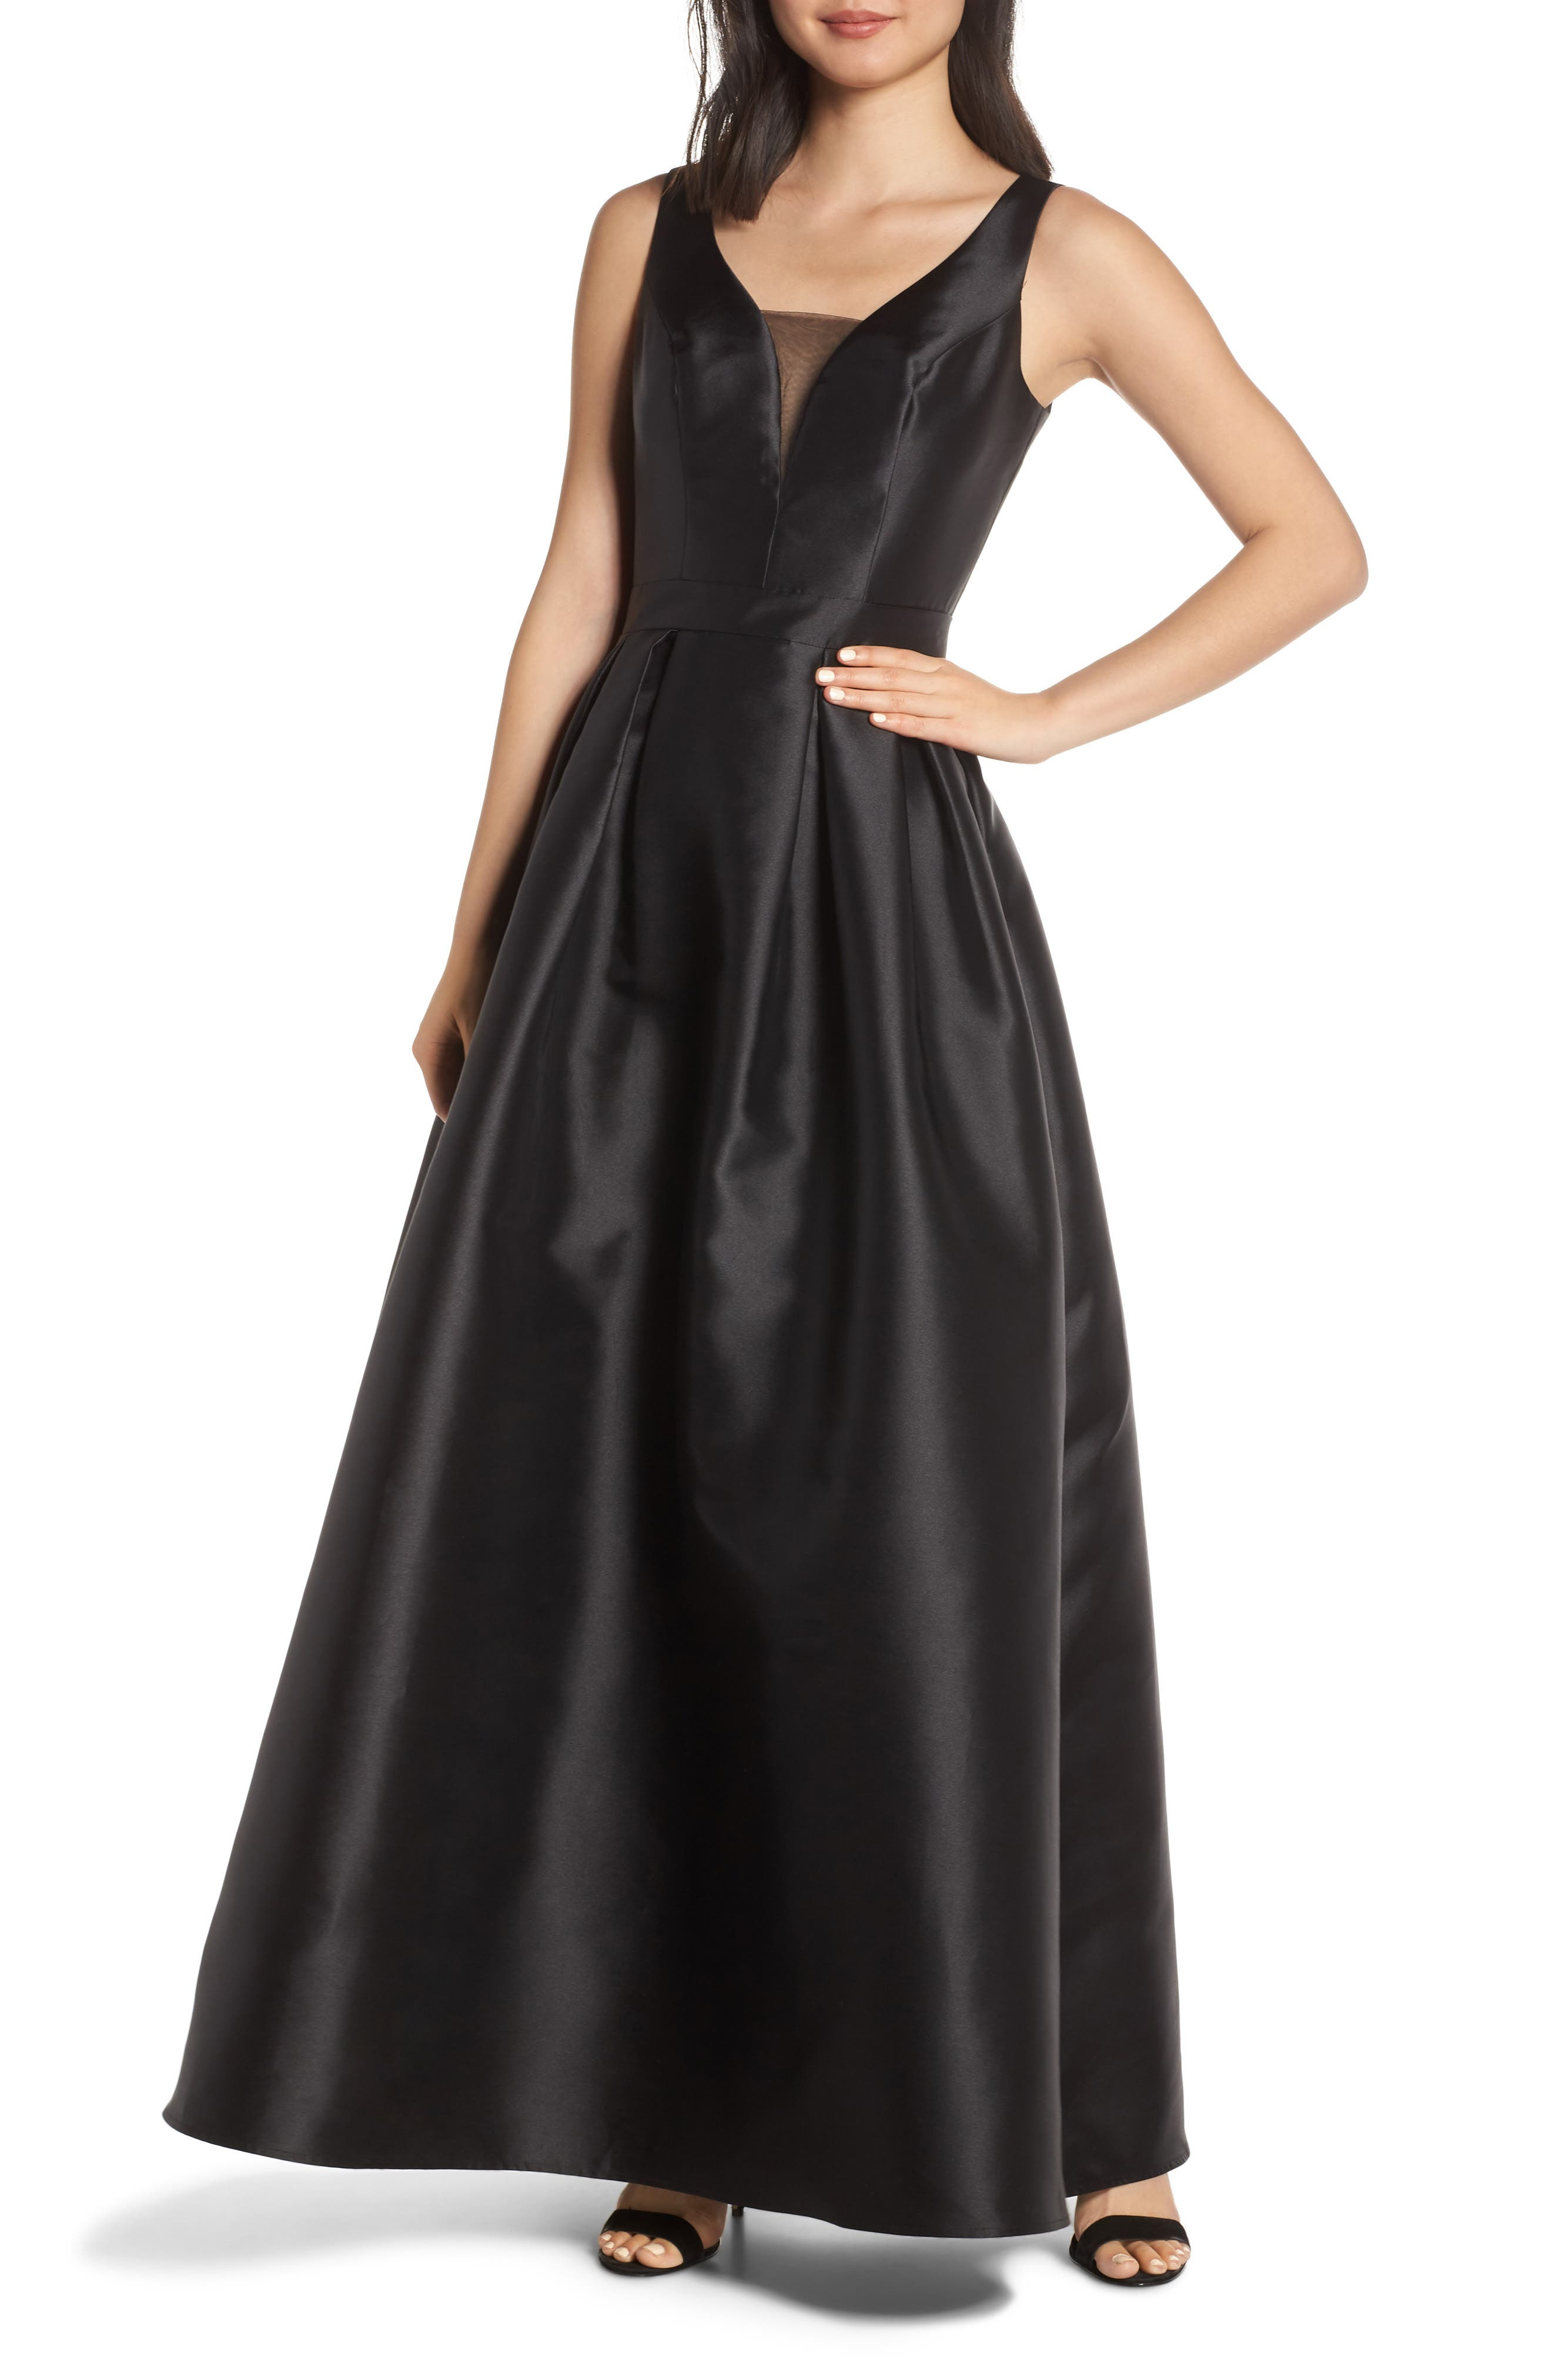 Chi Chi London Rae Back Cutout Evening Dress, Black